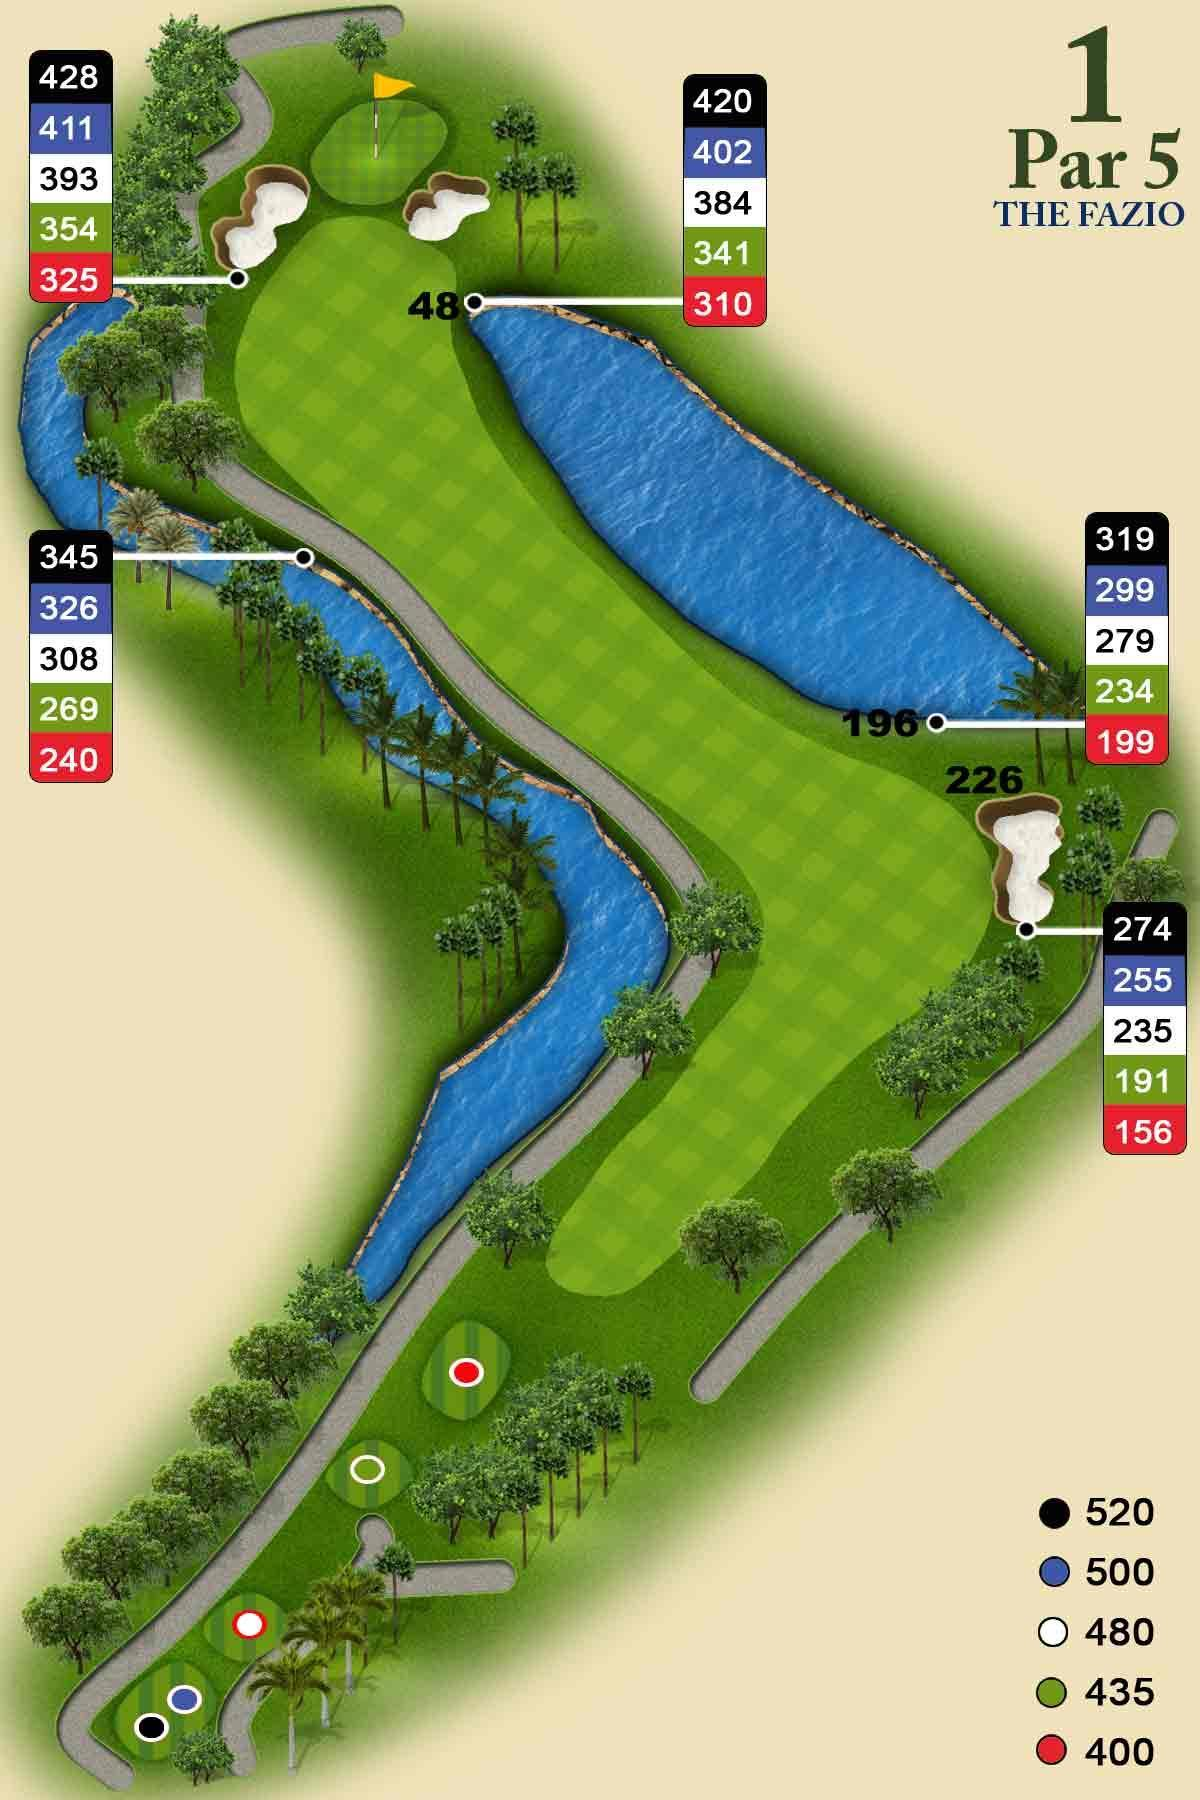 fazio course hole 1 pga national. Interior Design Ideas. Home Design Ideas